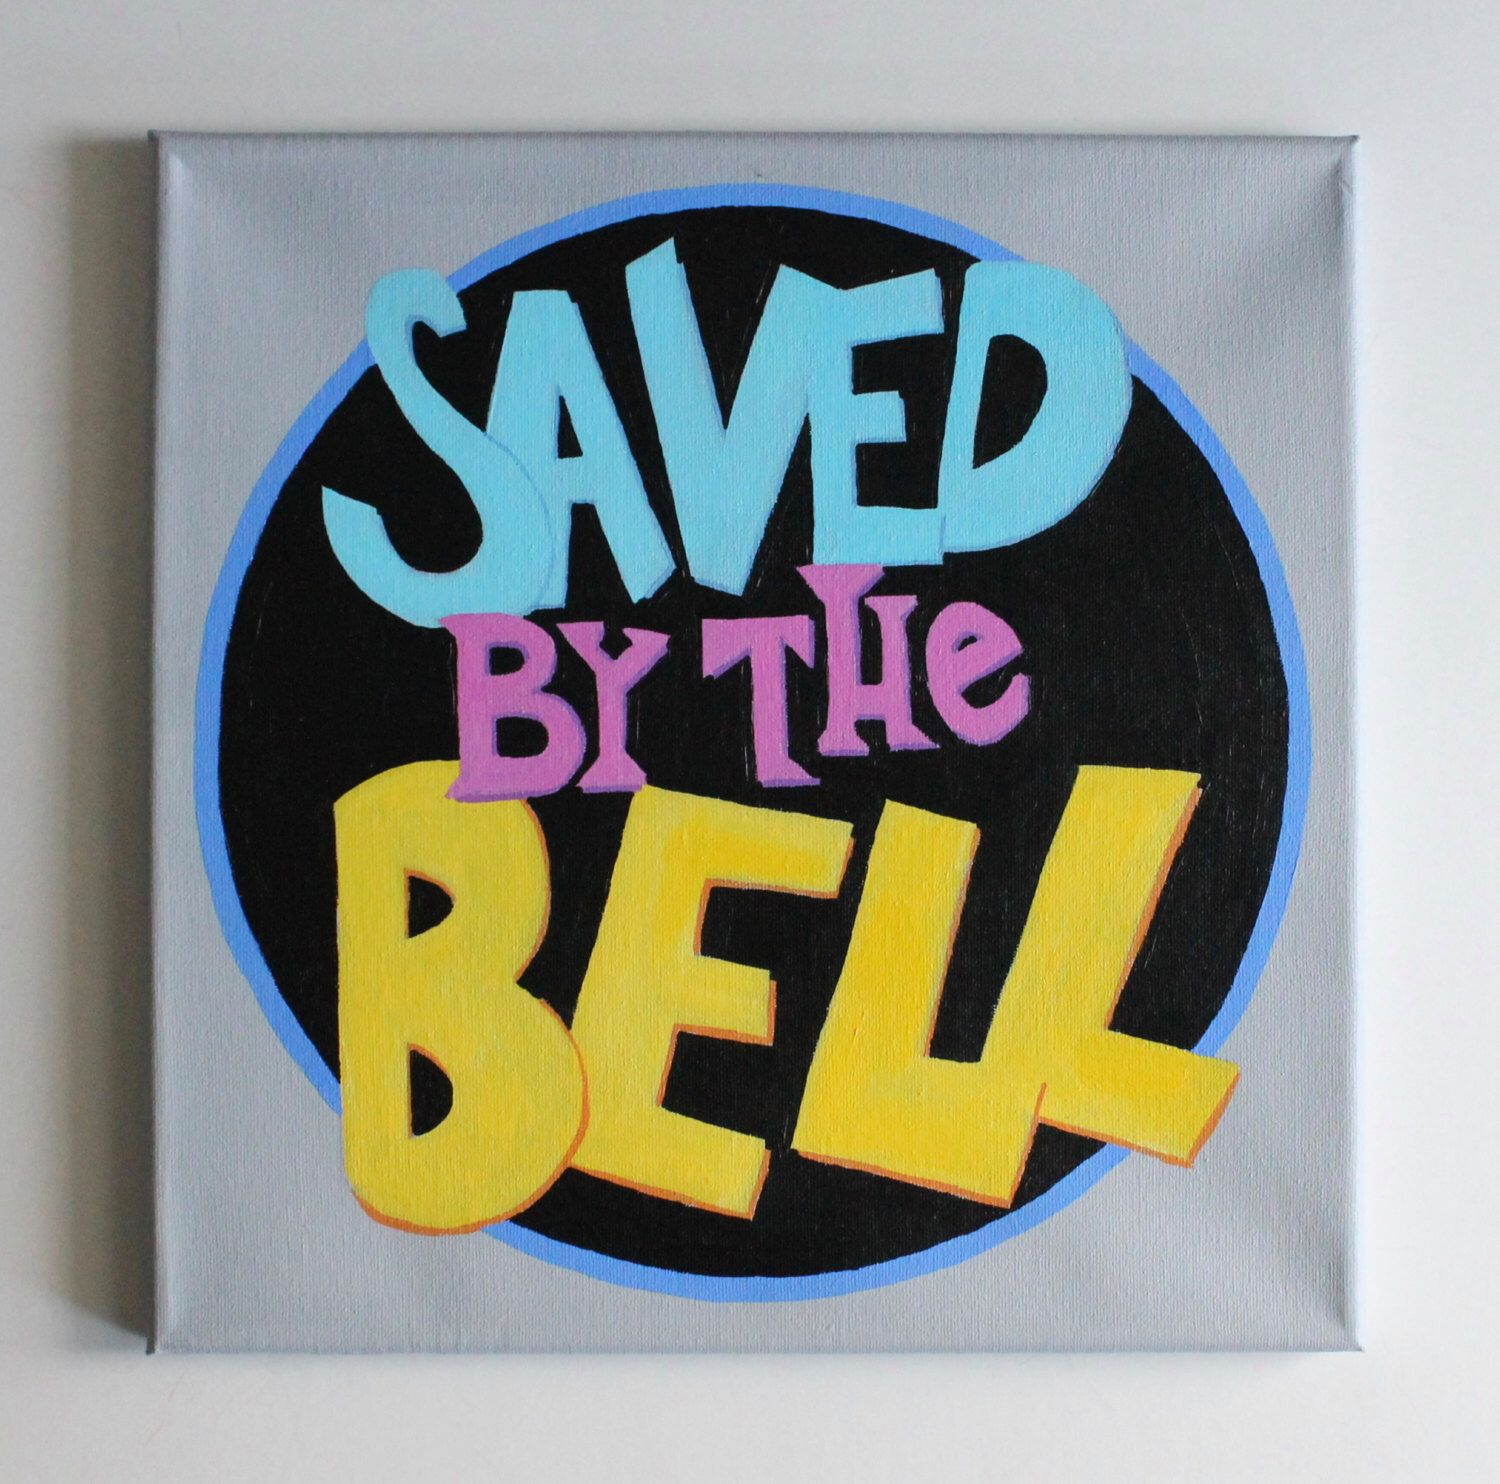 Saved By The Bell, Tv Show, Logo Art, 80S, 90S,